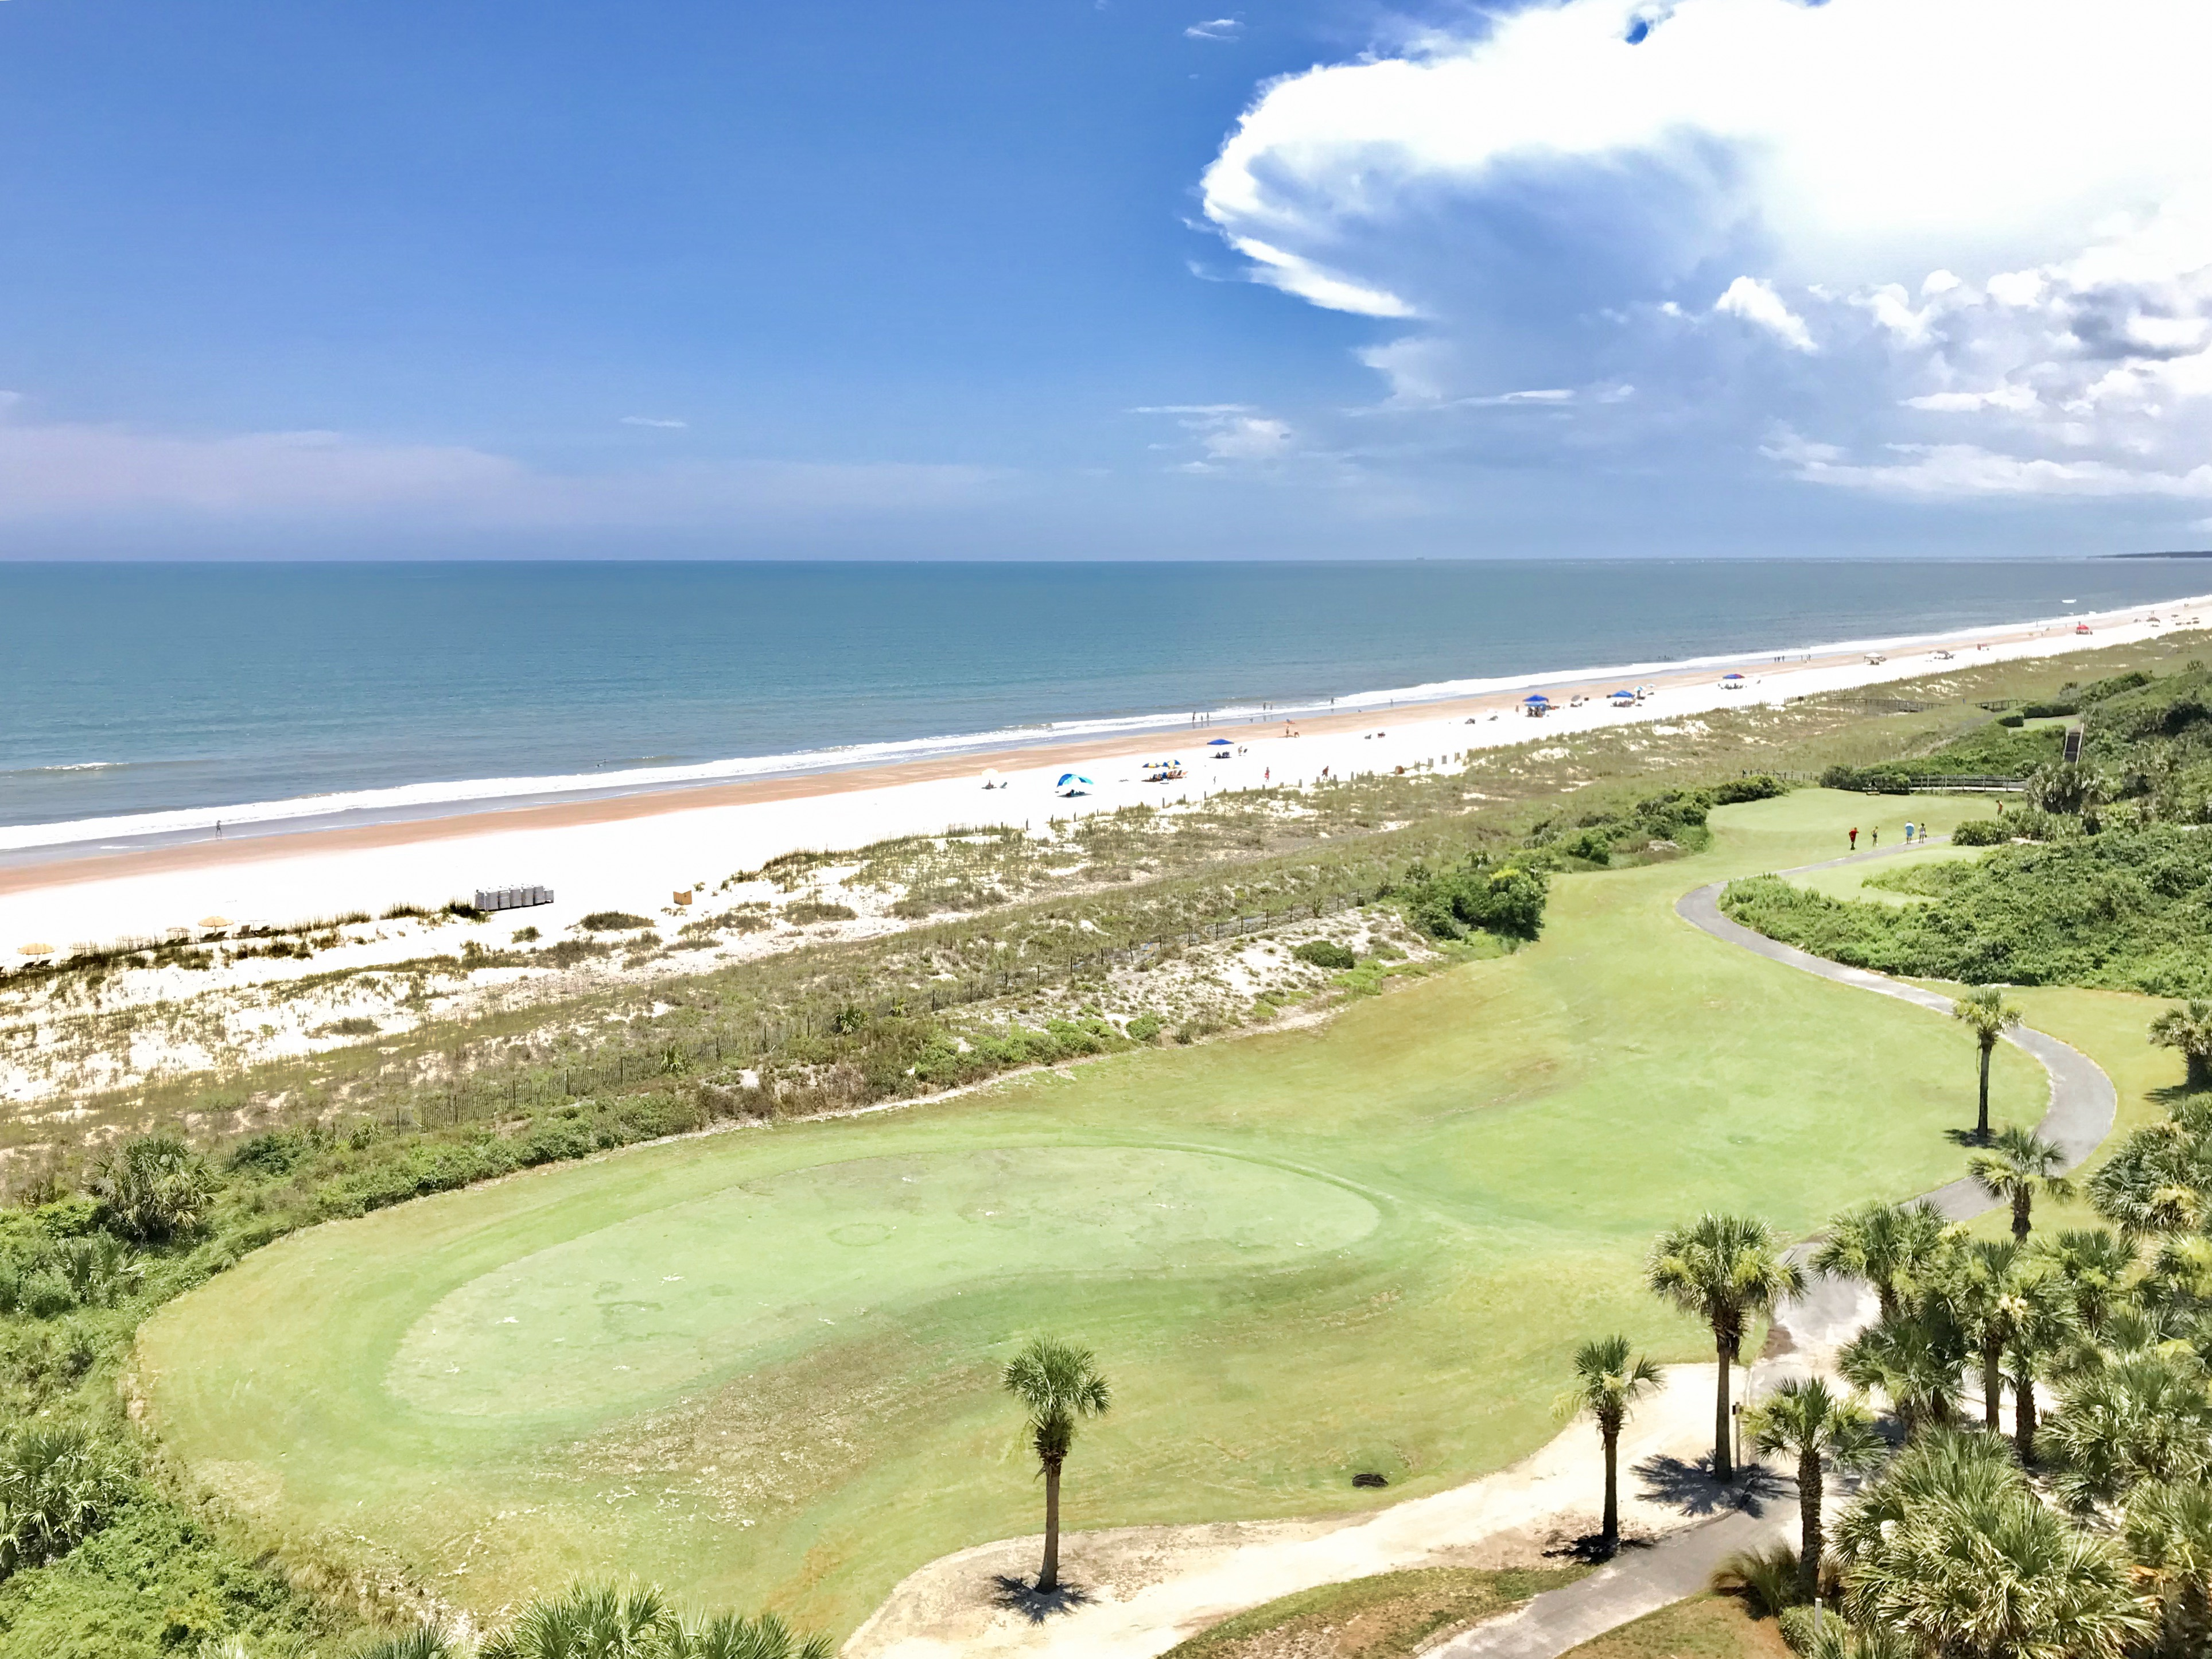 7 Reasons To Visit Amelia Island With Your Family, Views from Omni Amelia Plantation, Amelia Island, Fernandina Beach Florida